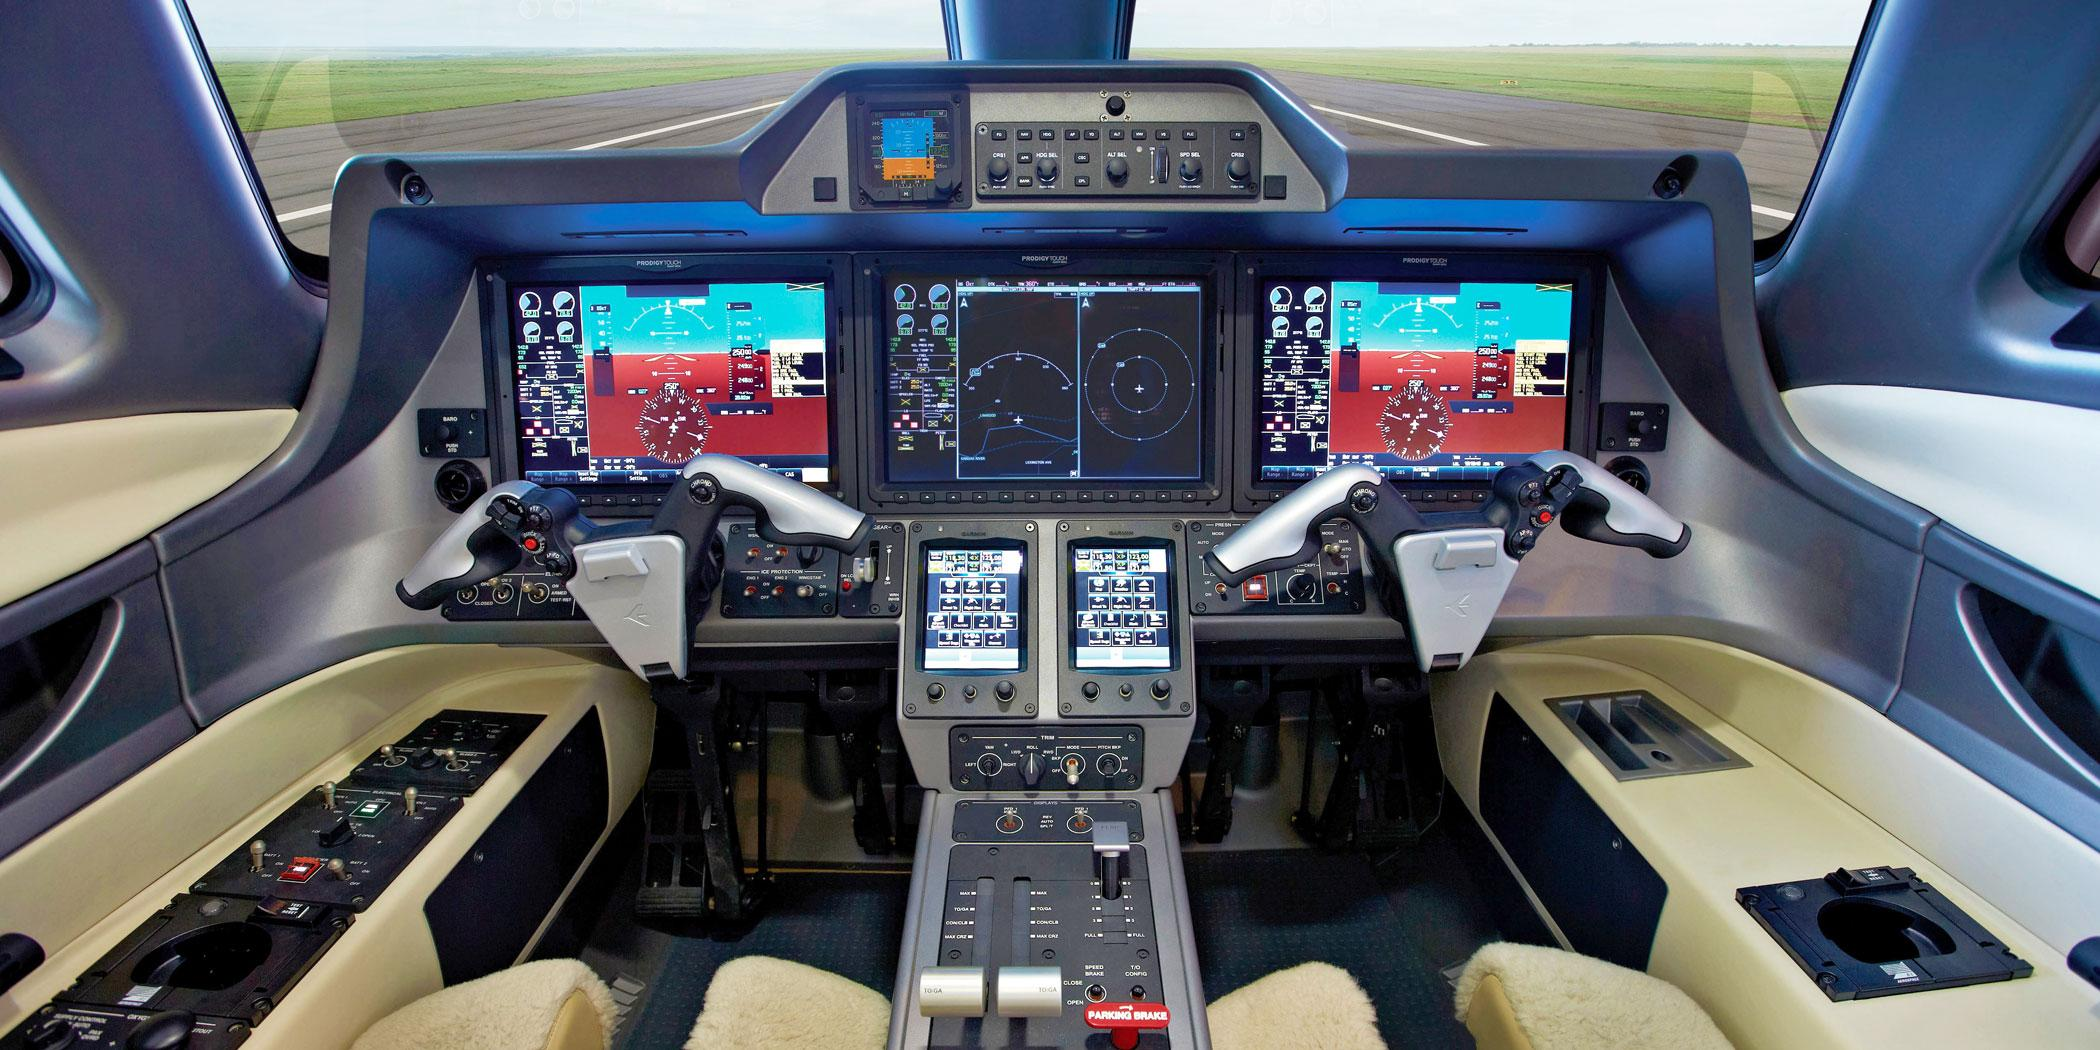 Phenom 100 flight deck